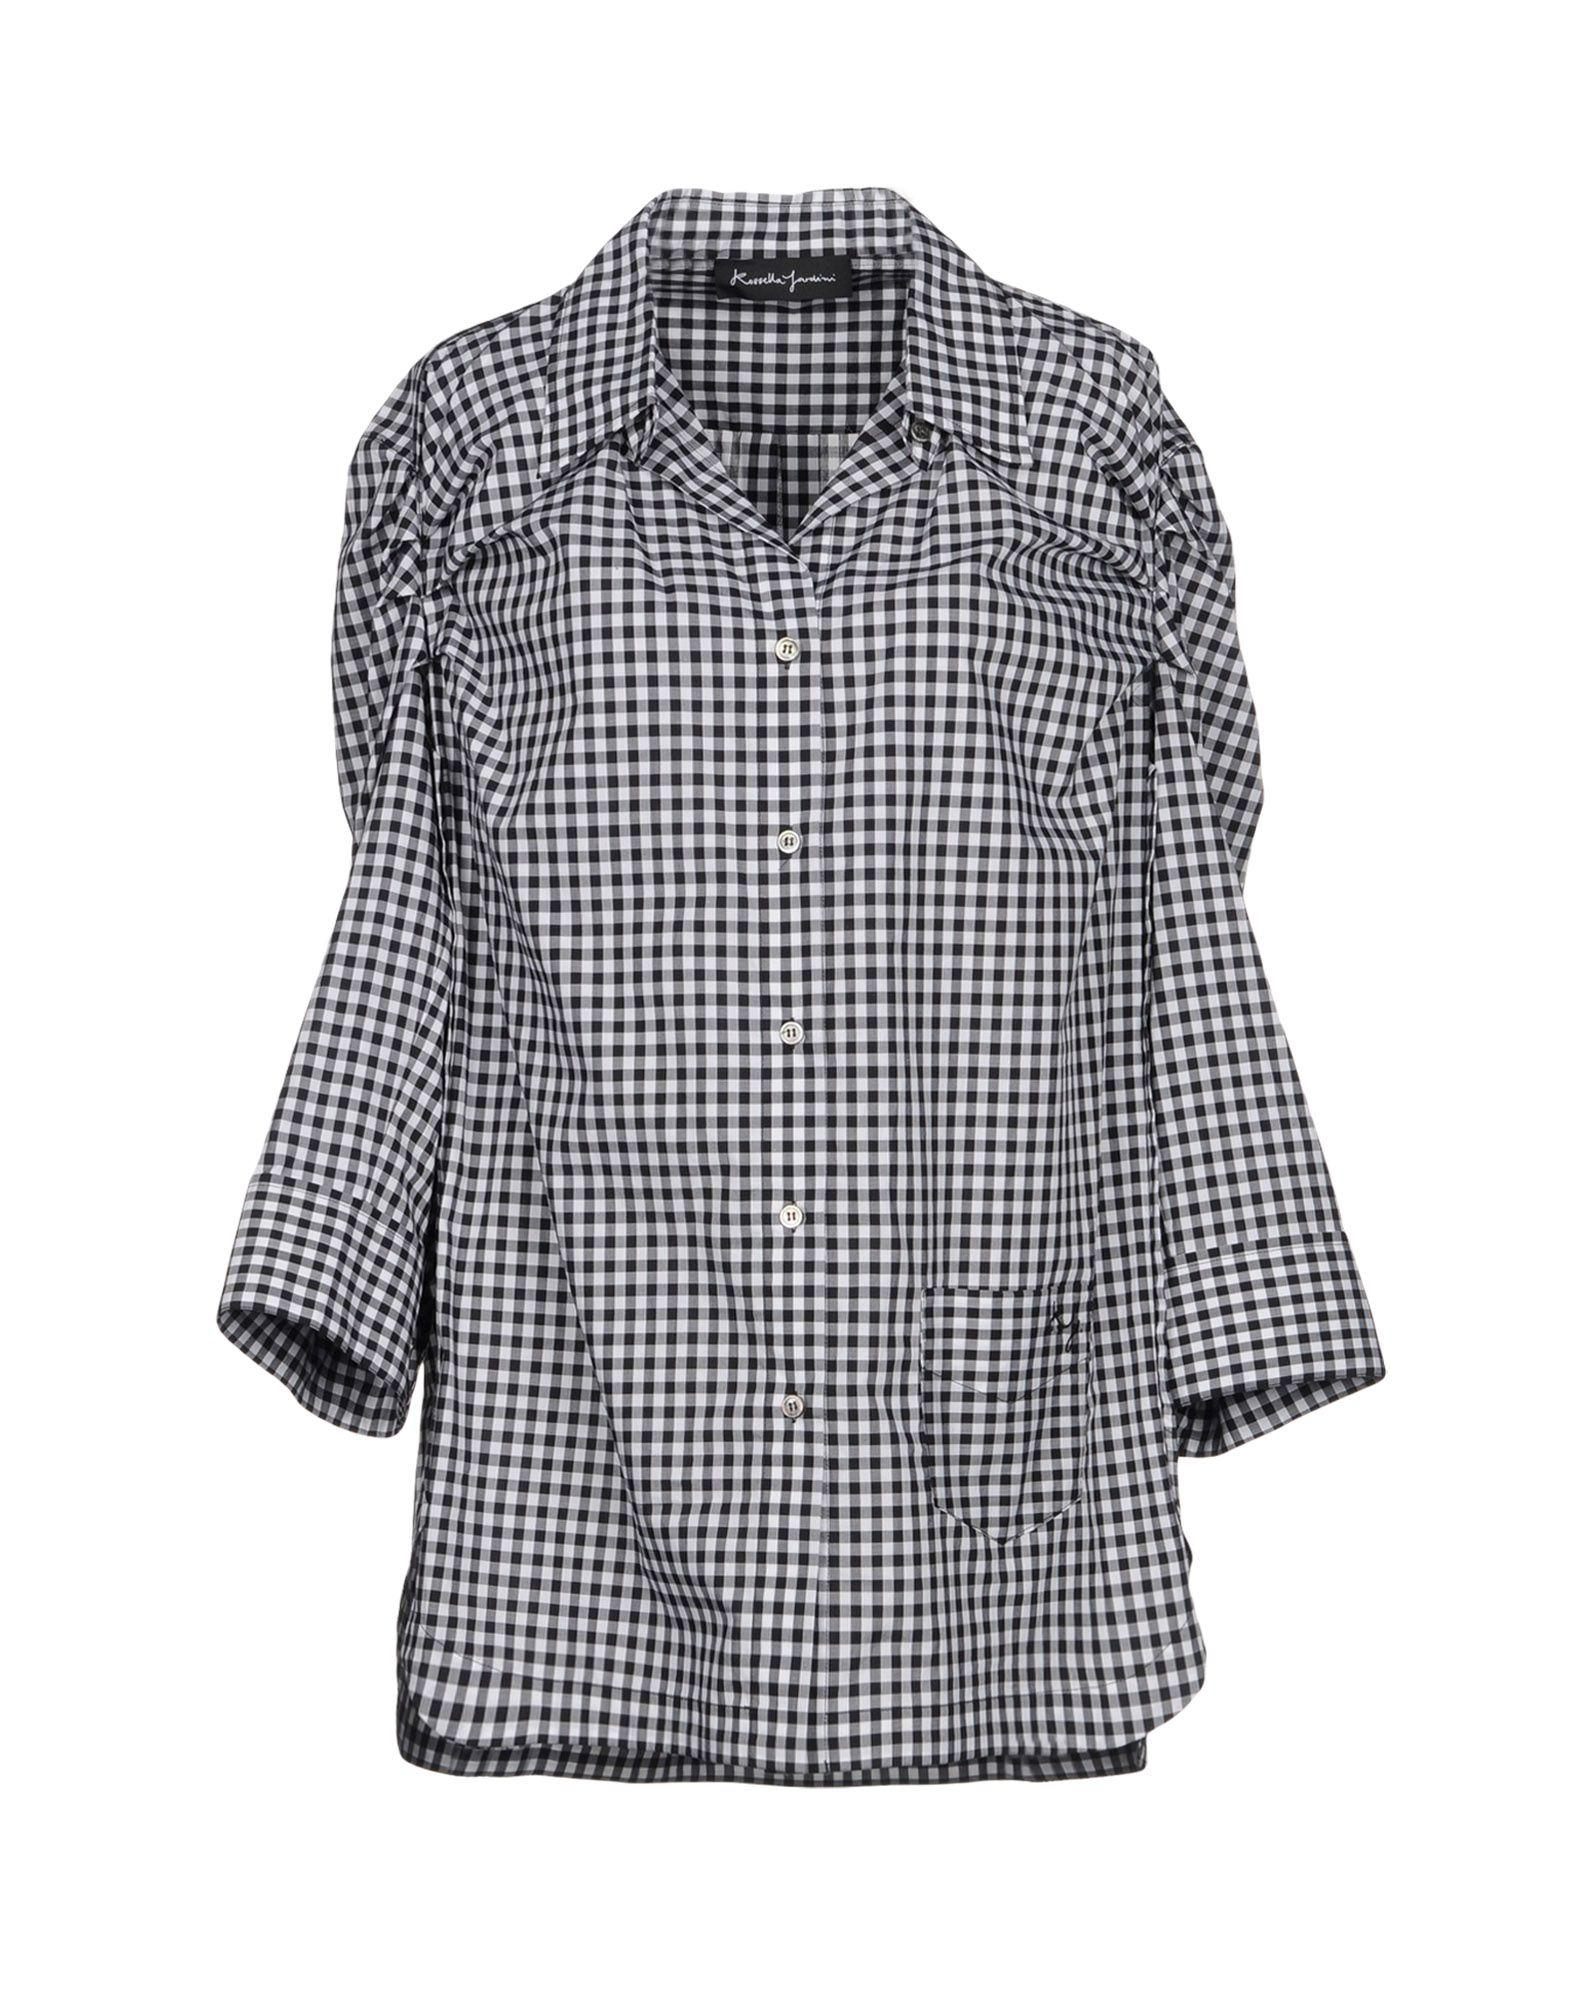 Rossella Jardini Checked Shirt In Black